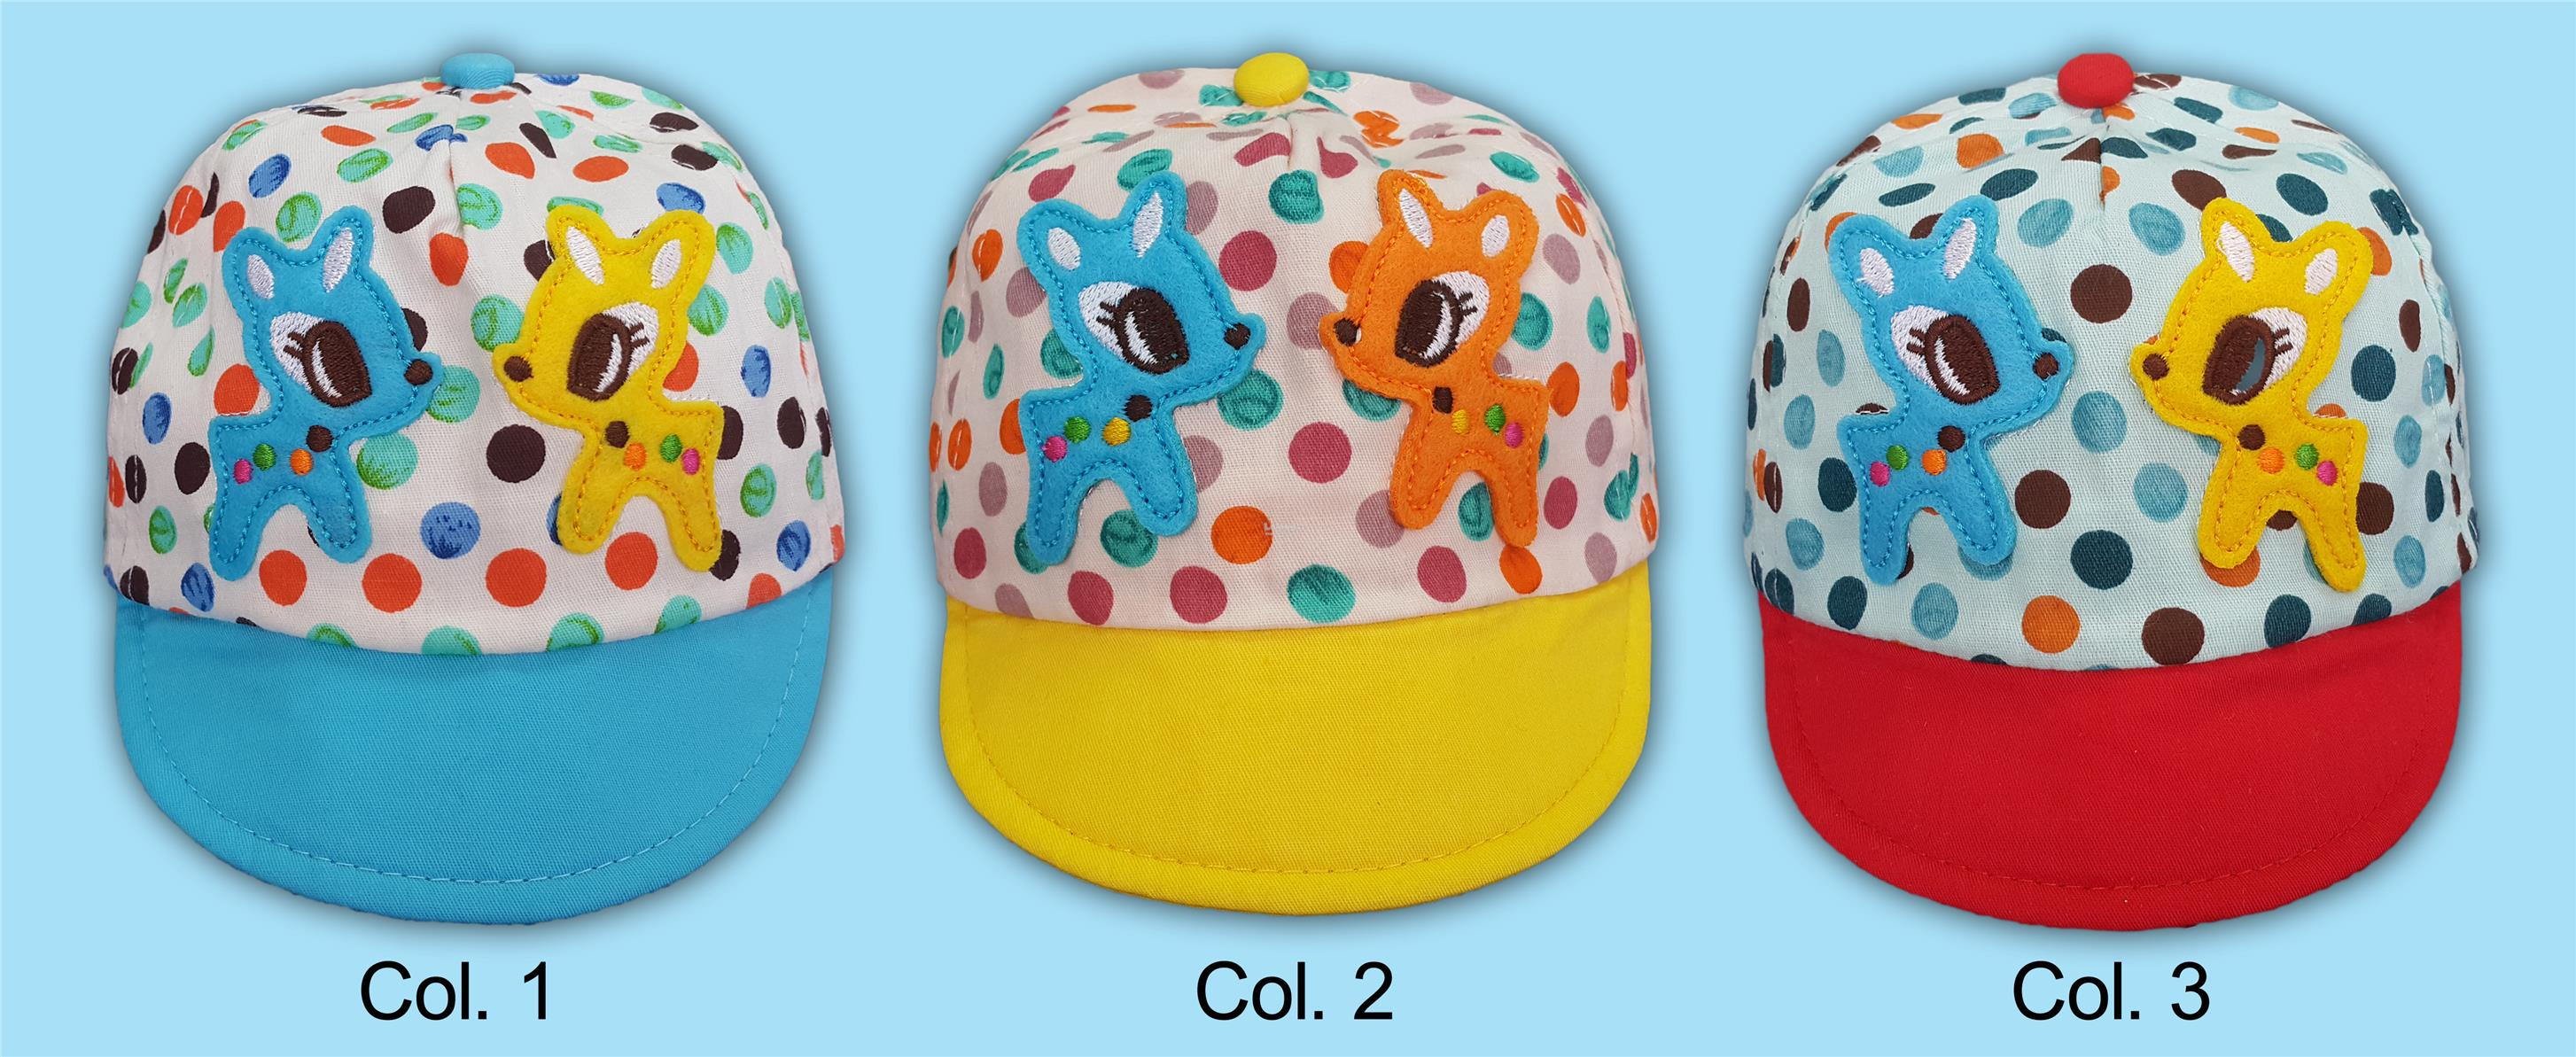 Baby Infant Caps with Pokka Dots and Deers Appliques